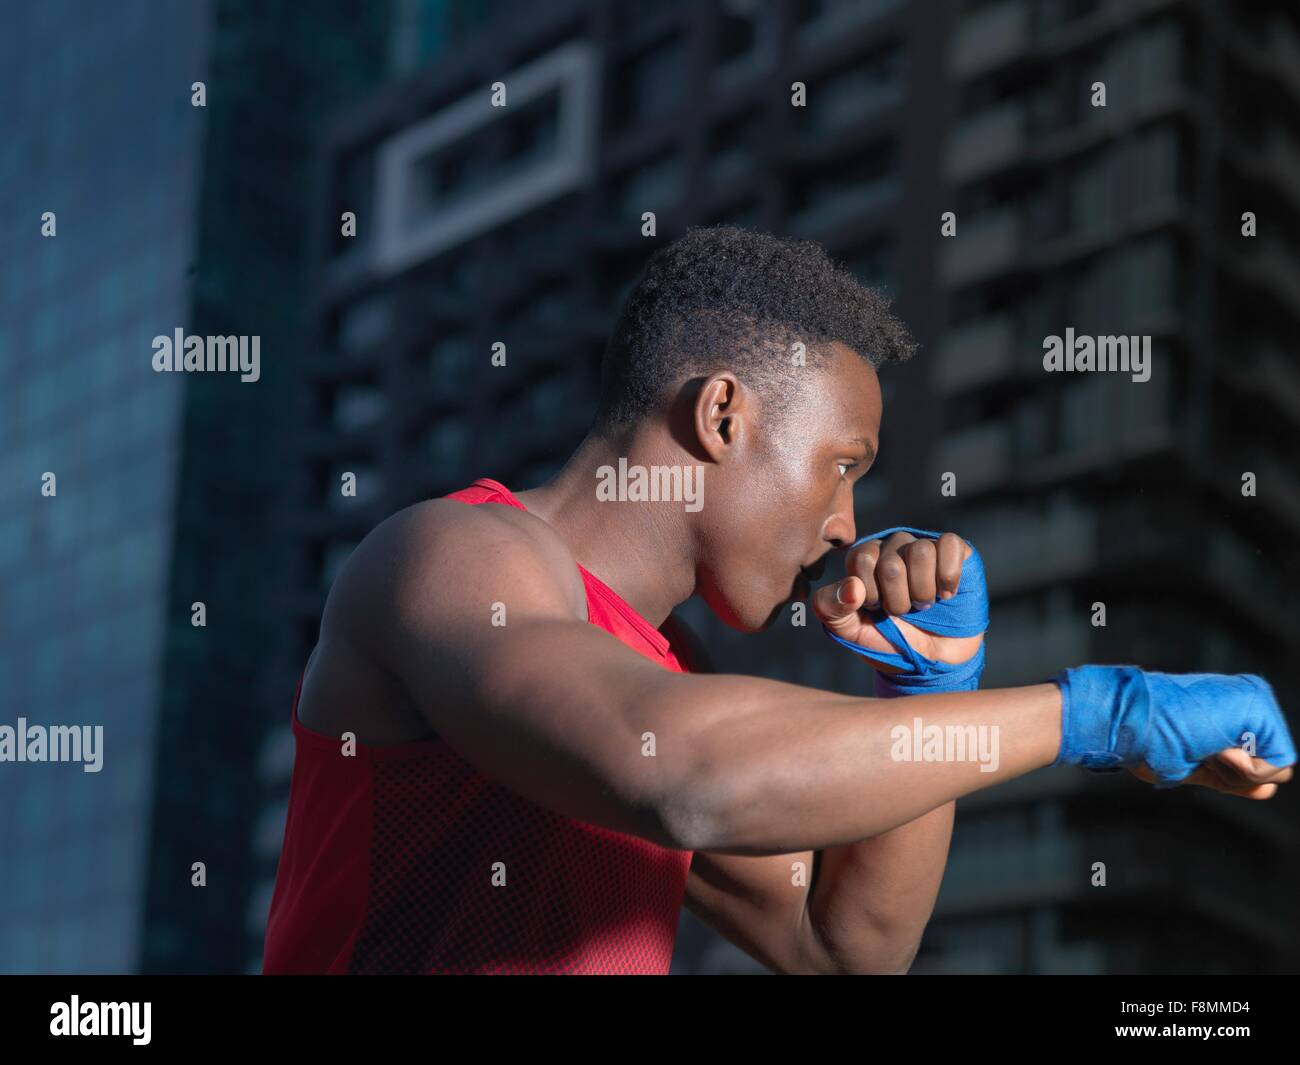 Portrait of boxer throwing punch, building in background Stock Photo